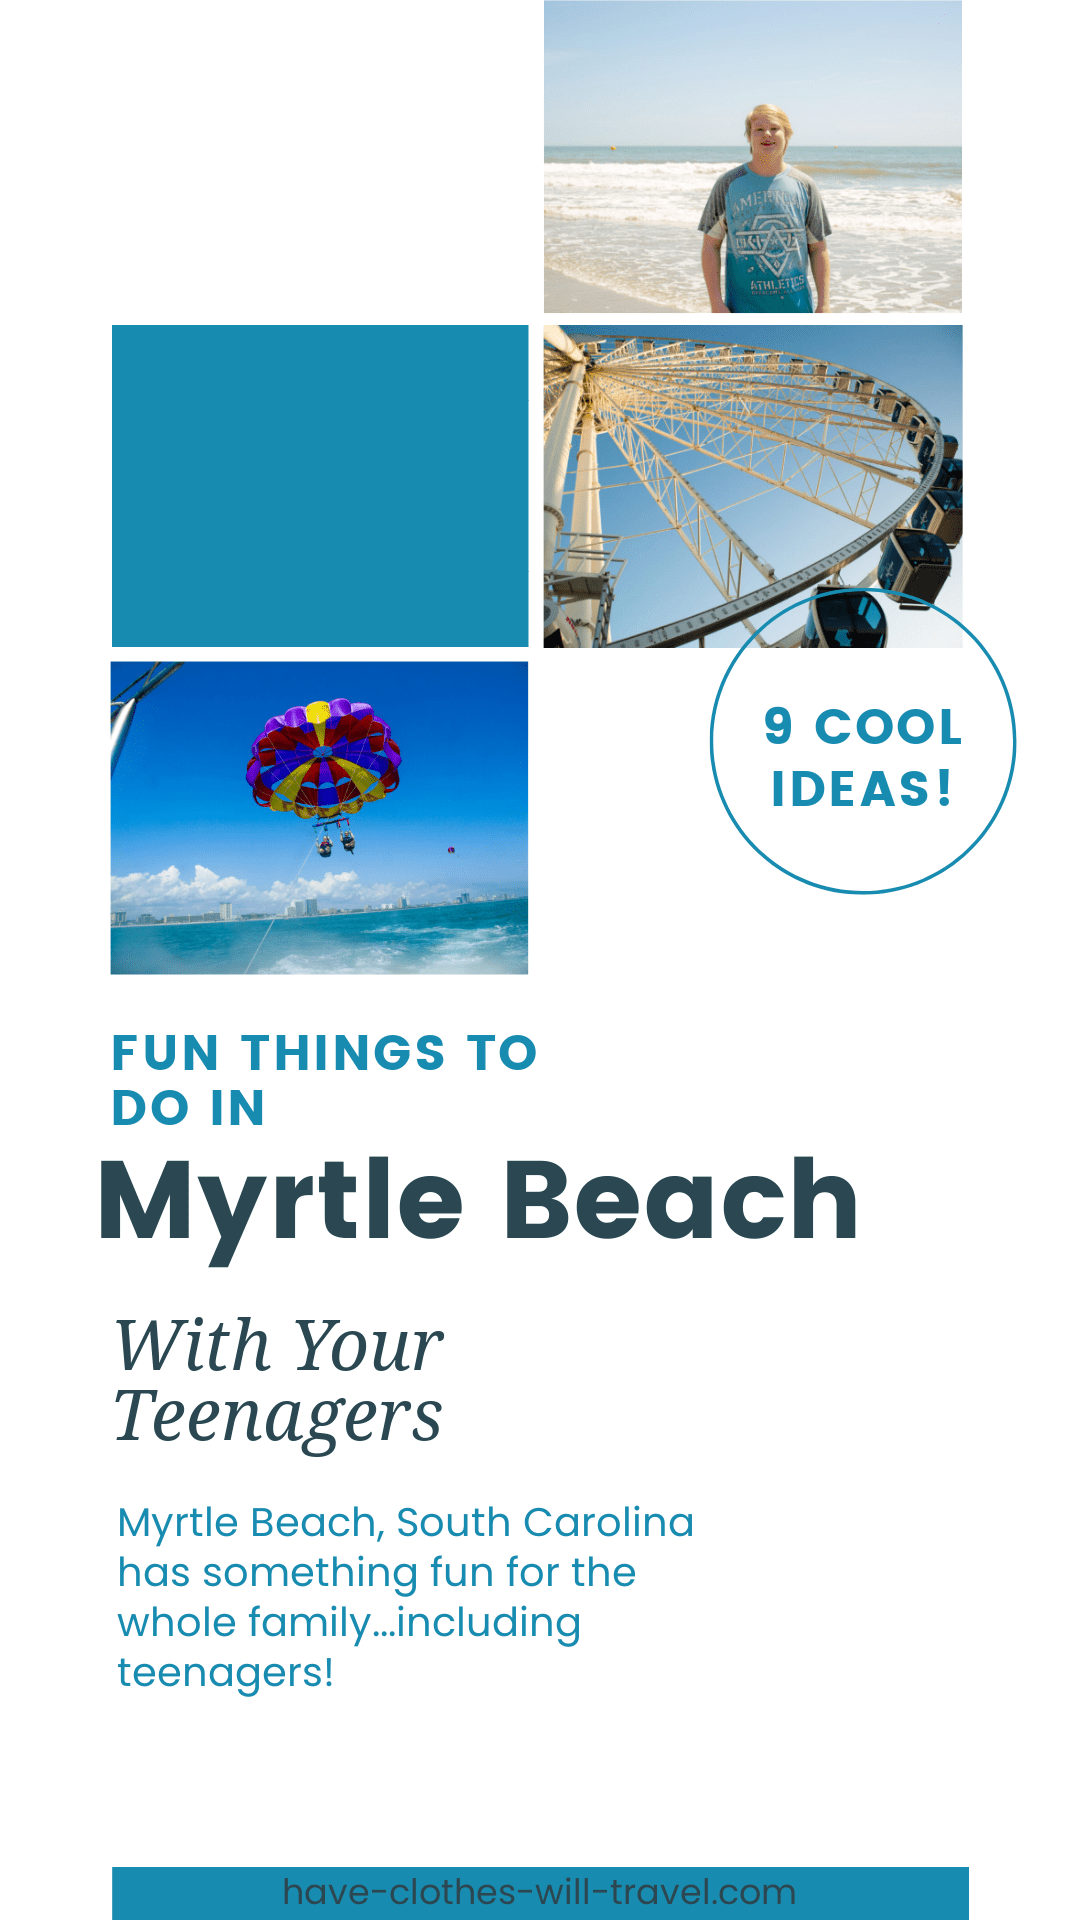 Myrtle Beach Fun Things to do With Your Teenagers